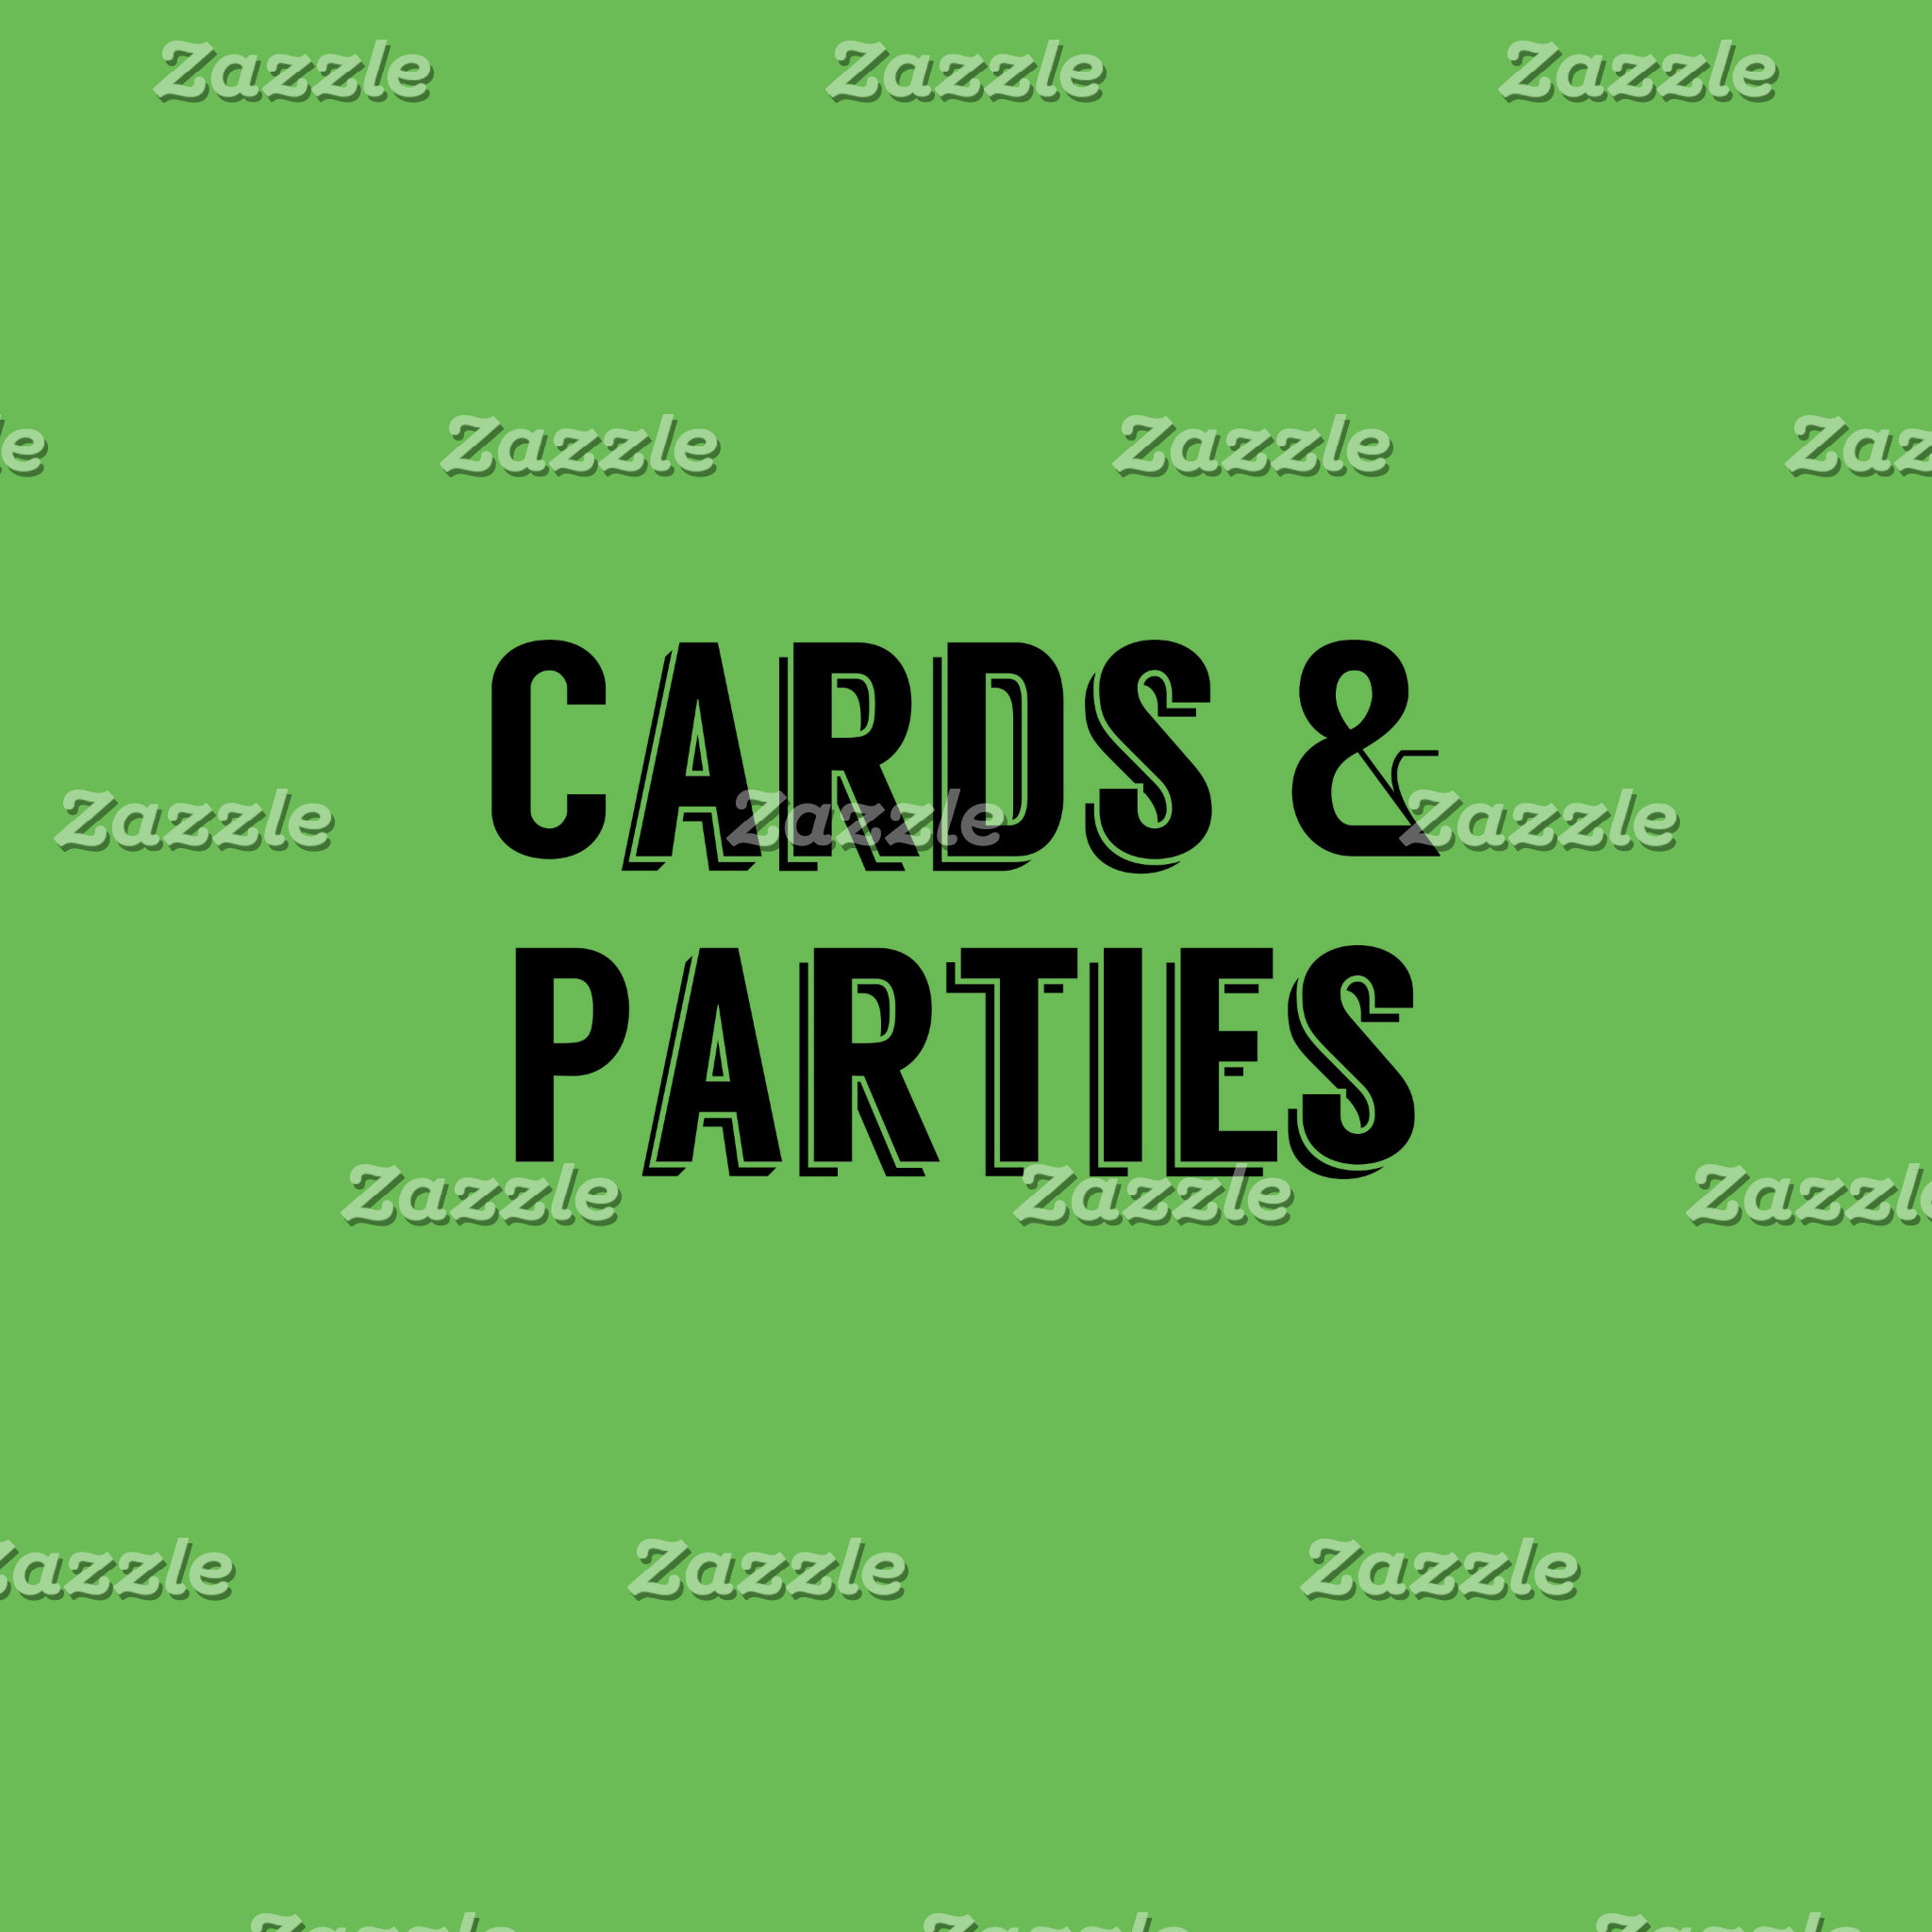 Cards, Gifts & Parties